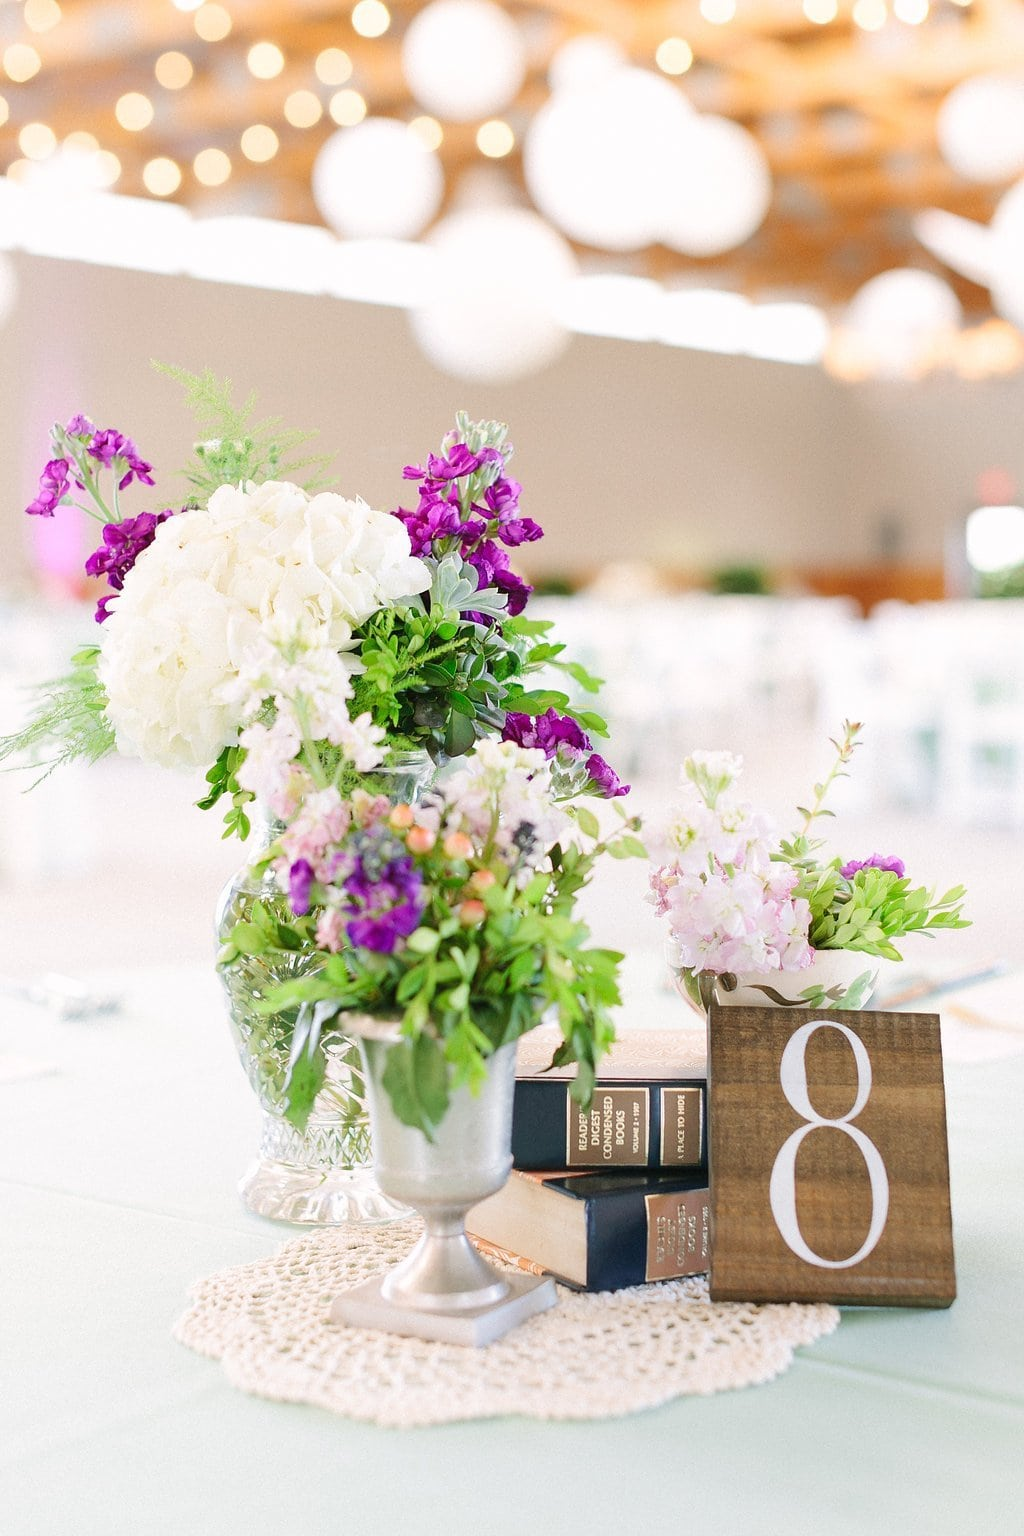 vintage books and decor at wedding